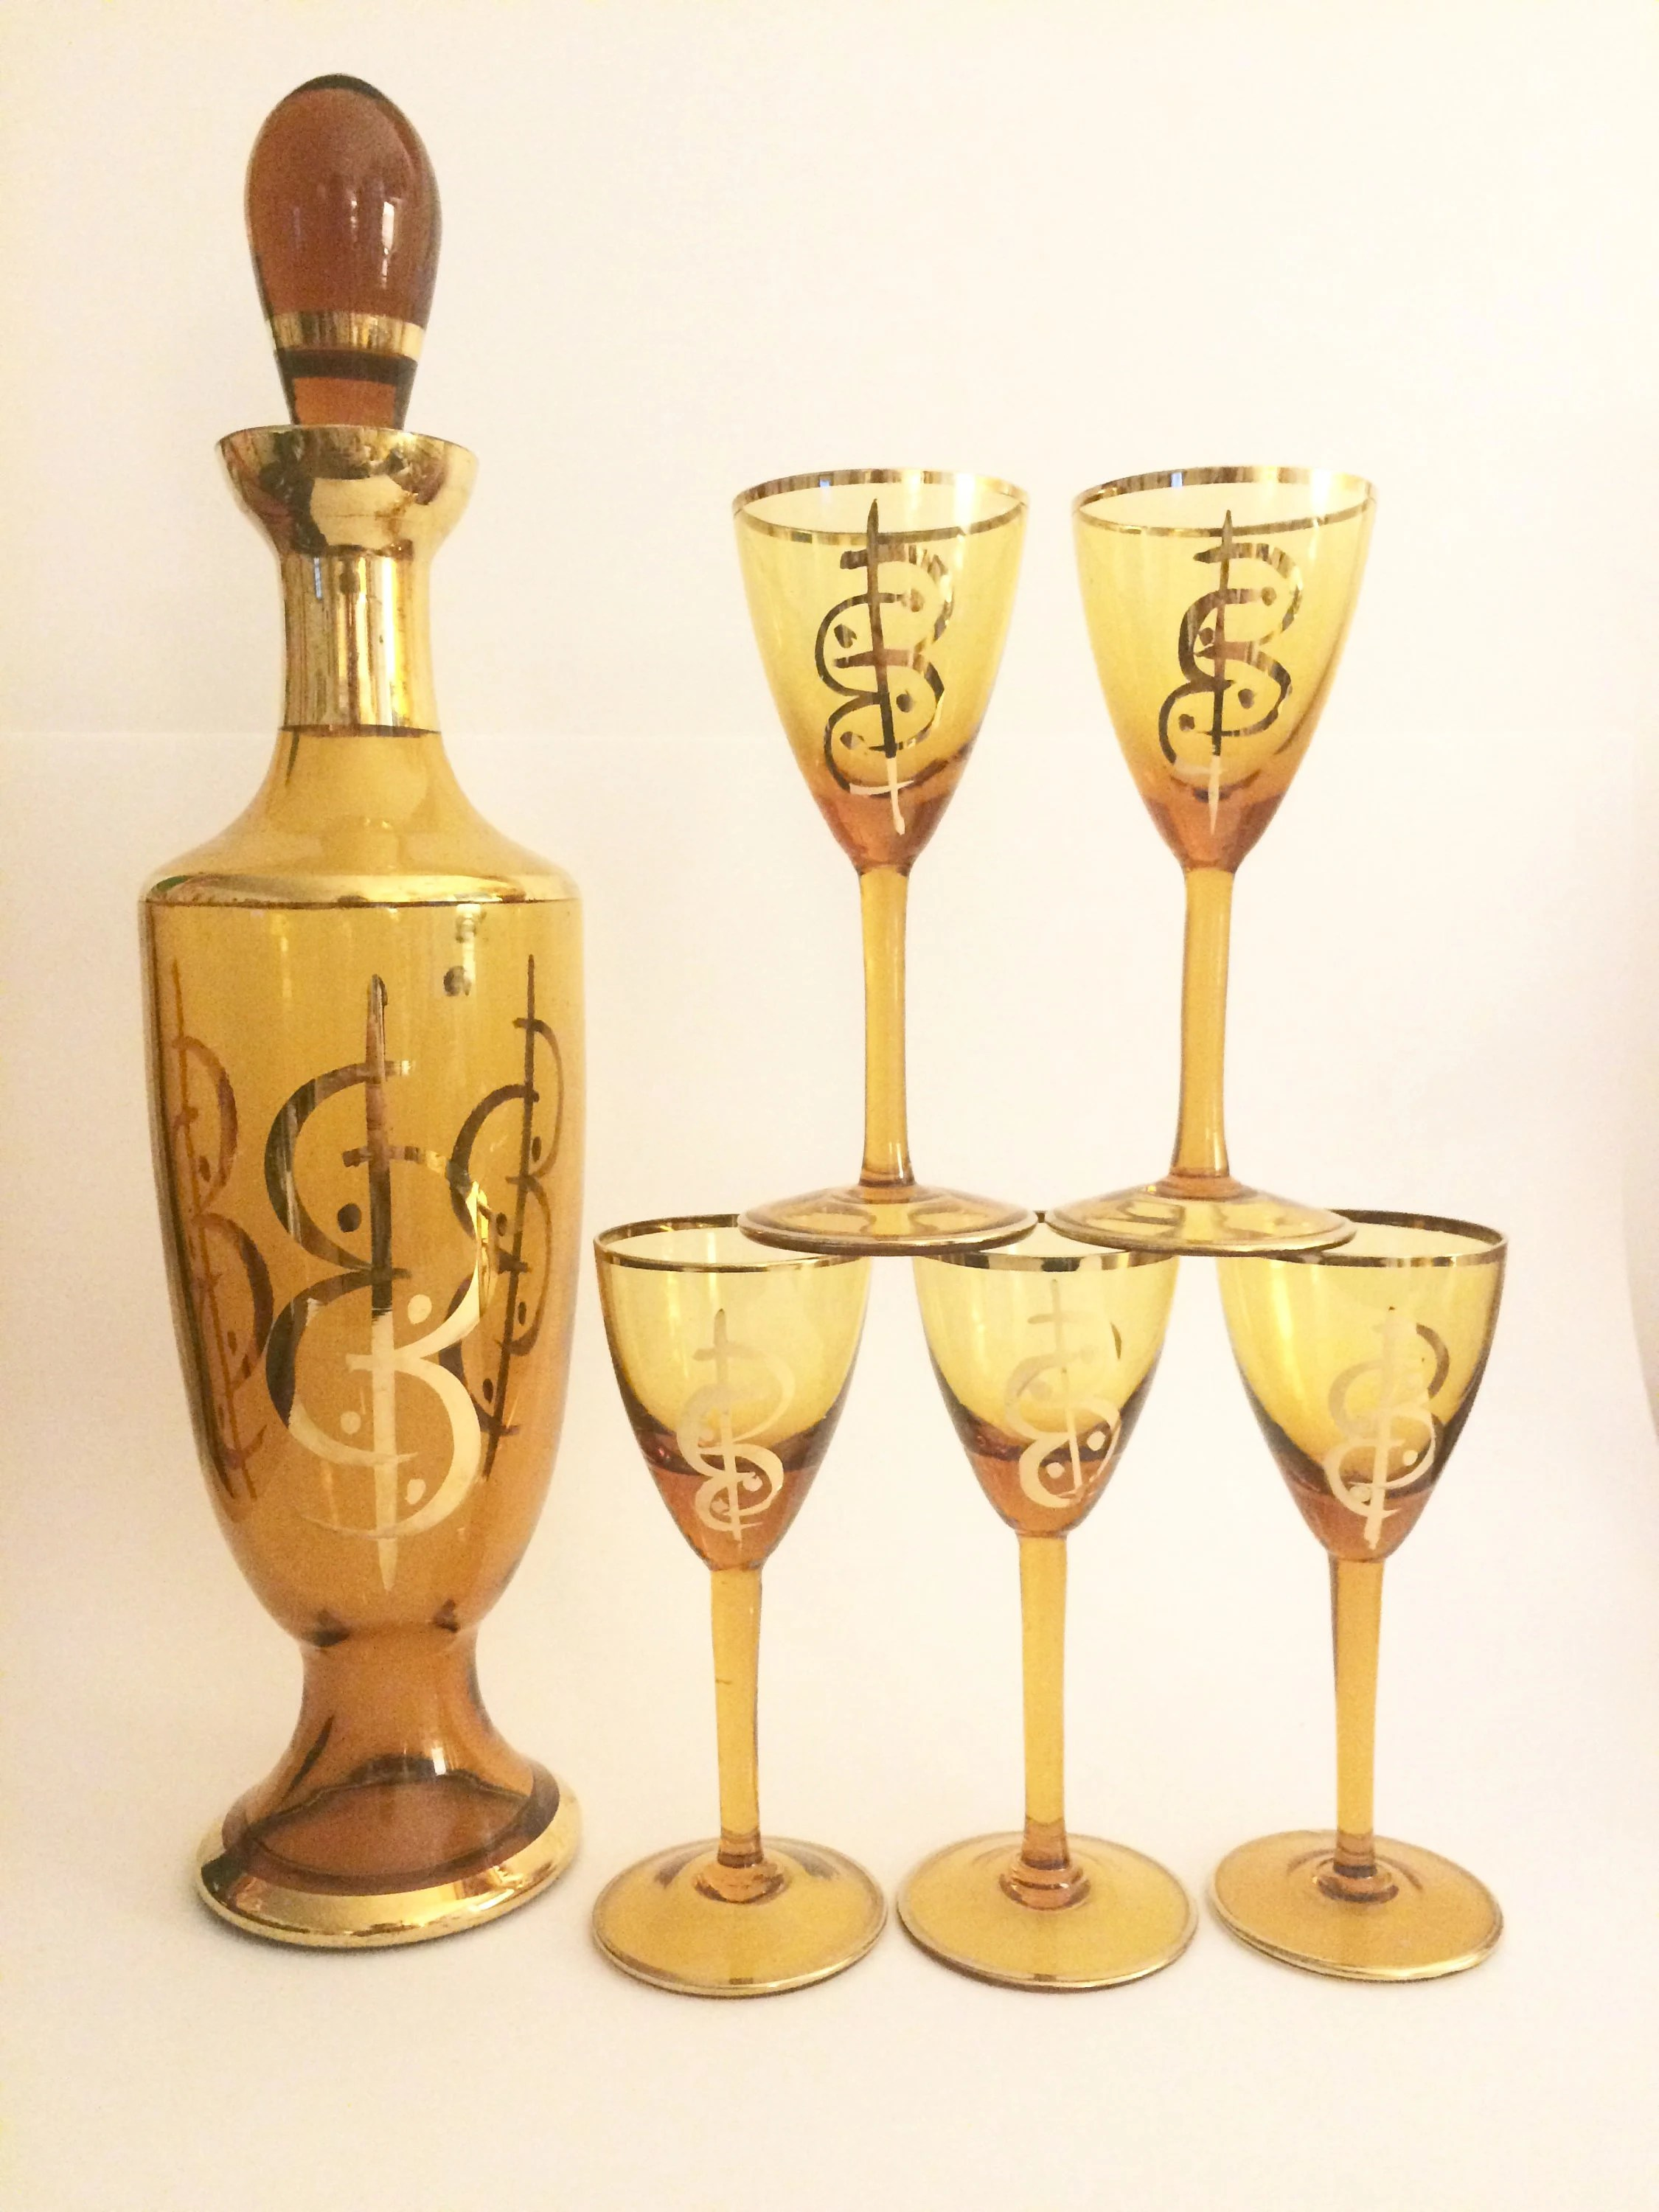 Decanter Wine Glas Vintage Amber Wine Glasses And Decanter Gold Rimmed Cordial Glasses Amber Stemware Mid Century Wine Glasses Liquor Decanter Mcm Murano Glass